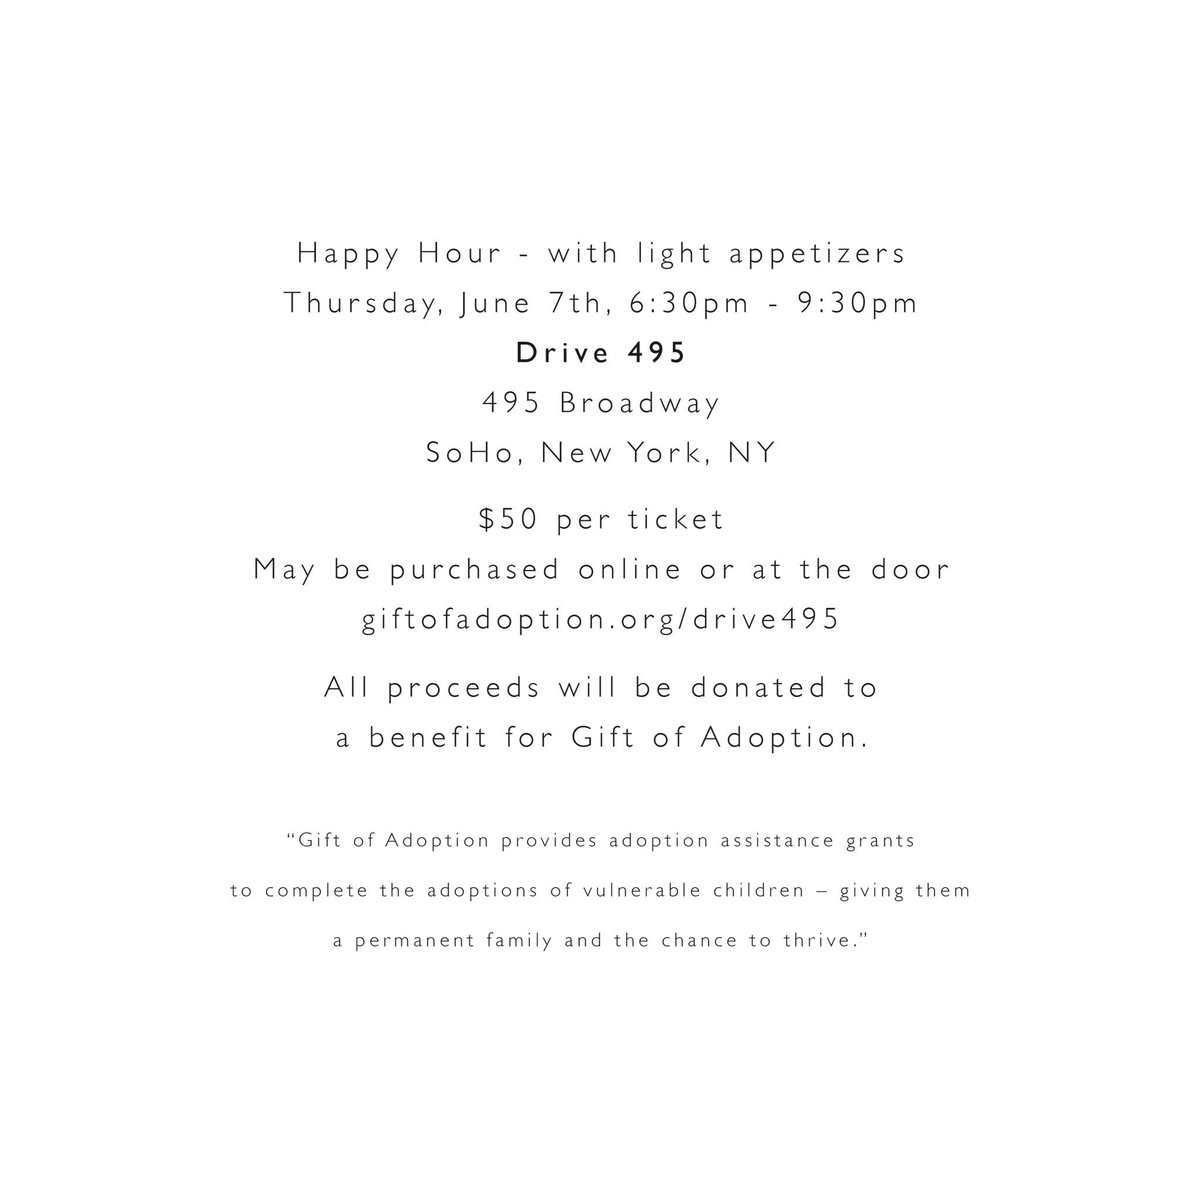 Join @julia_marino at @Drive495 for a @GiftofAdoption benefit!